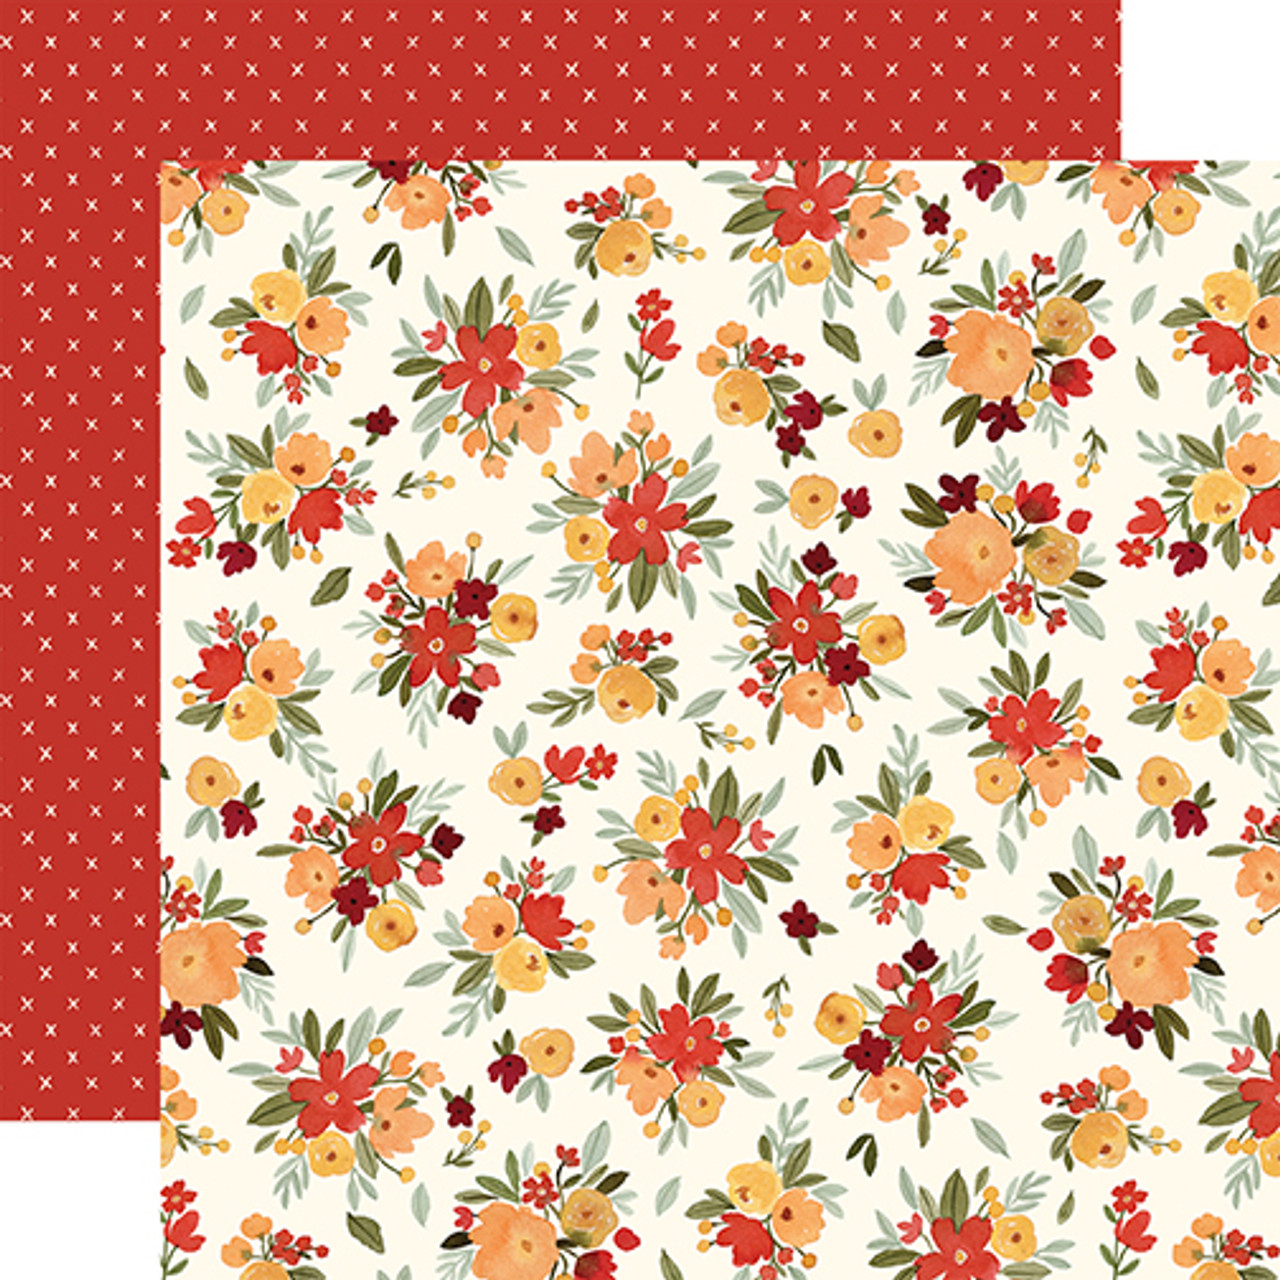 Hello Autumn Collection Fall Floral 12 x 12 Double-Sided Scrapbook Paper by Carta Bella